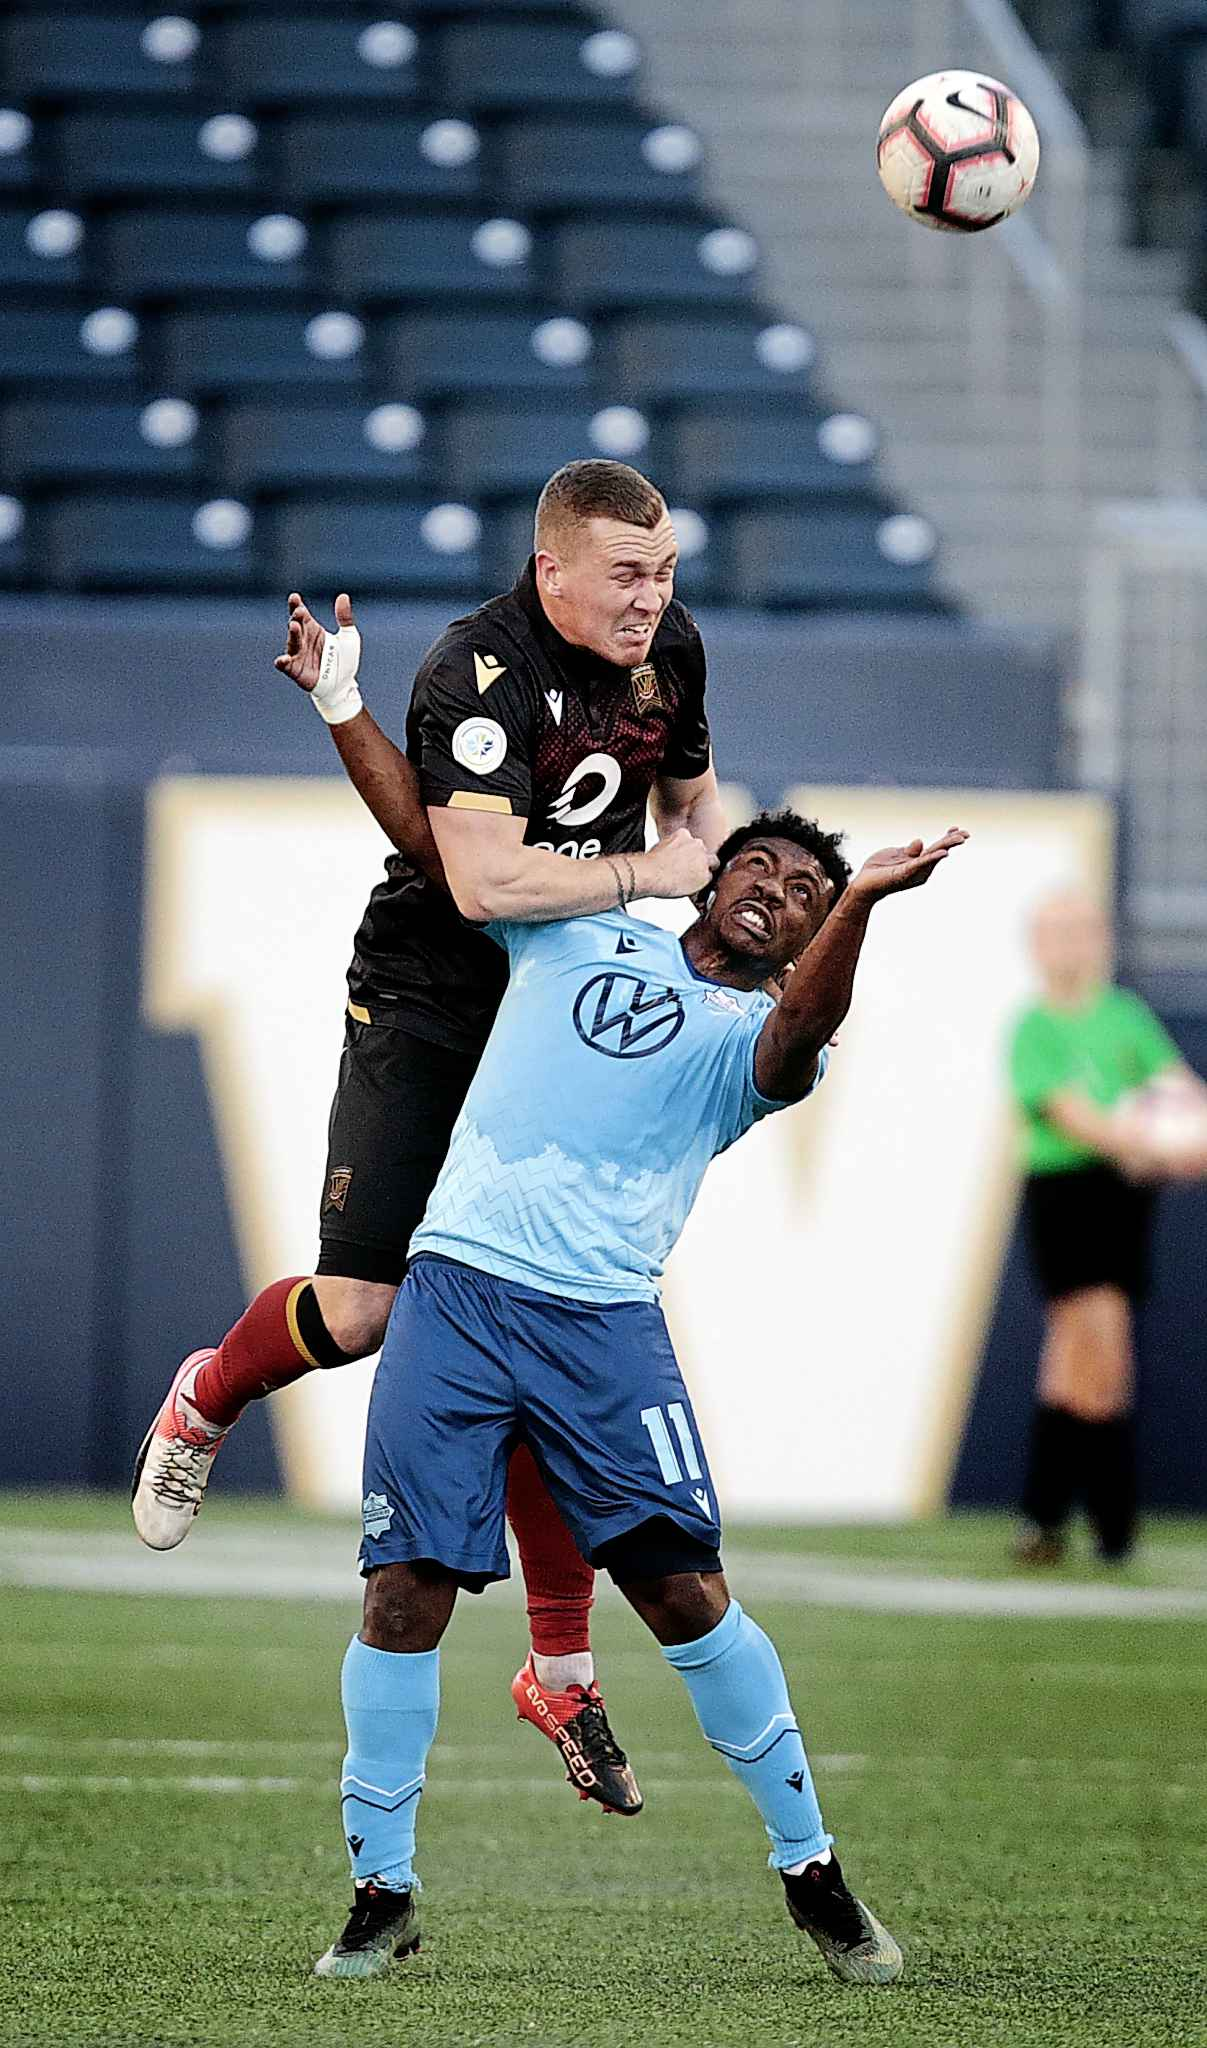 Valour FC's Adam Mitter heads the ball while holding HFX Wanderer's Akeem Garcia down on the ground at IG Field, Wednesday. PHIL HOSSACK / WINNIPEG FREE PRESS